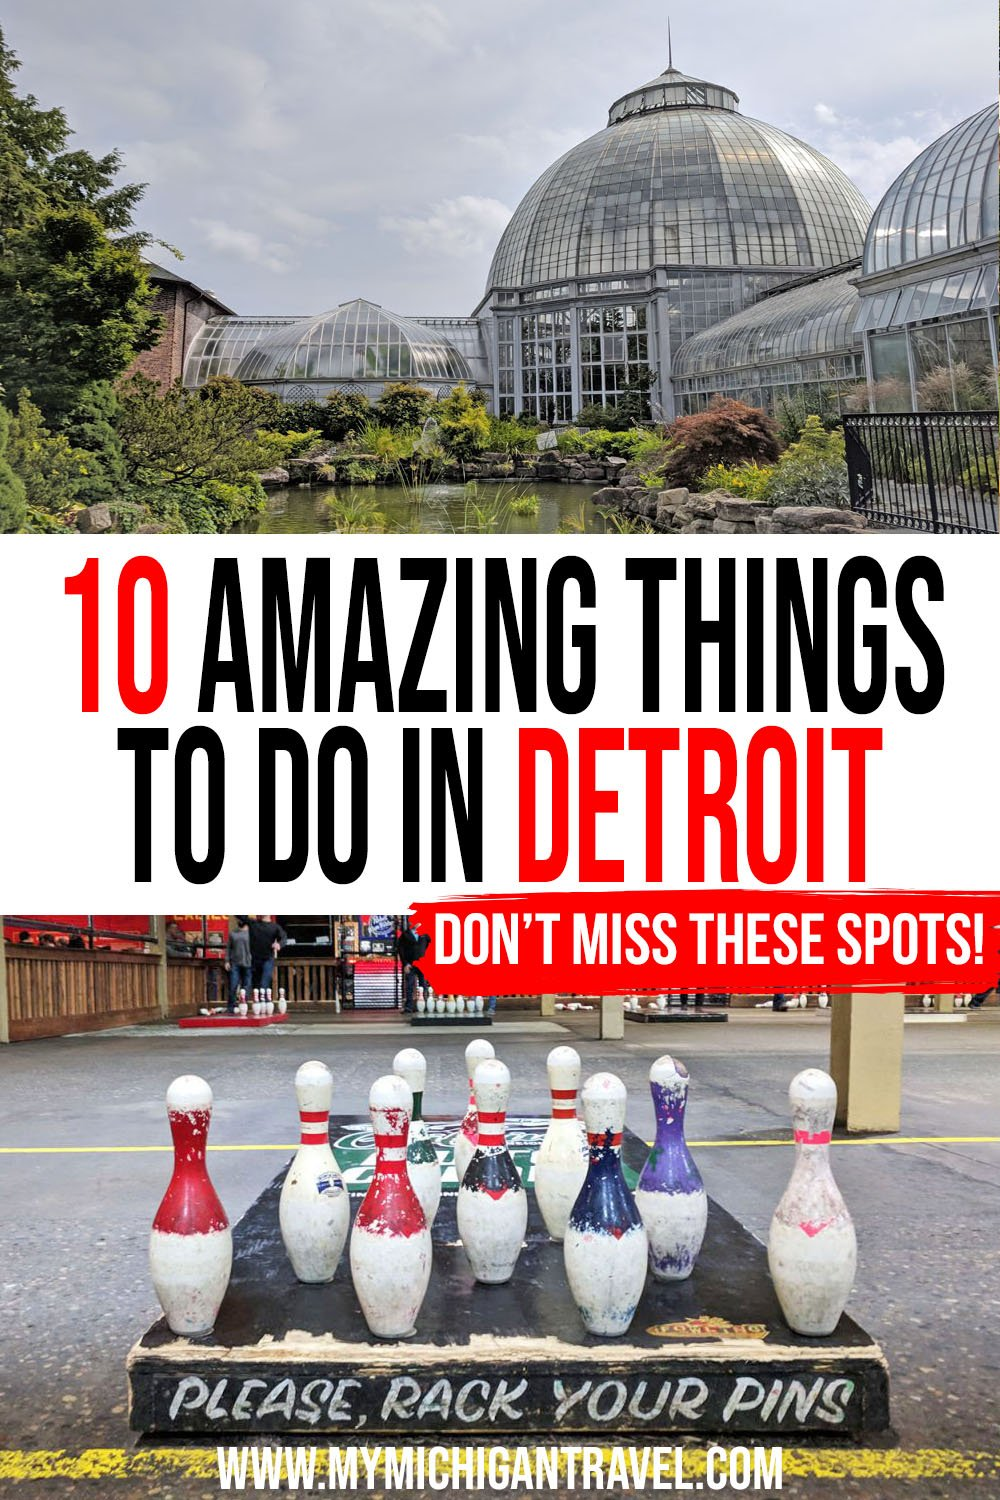 """Photo collage of a large glass-domed conservatory on Belle Isle and a rack of bowling pins at the Fowling Warehouse with text overlay reading """"10 amazing things to do in Detroit - don't miss these spots!"""""""